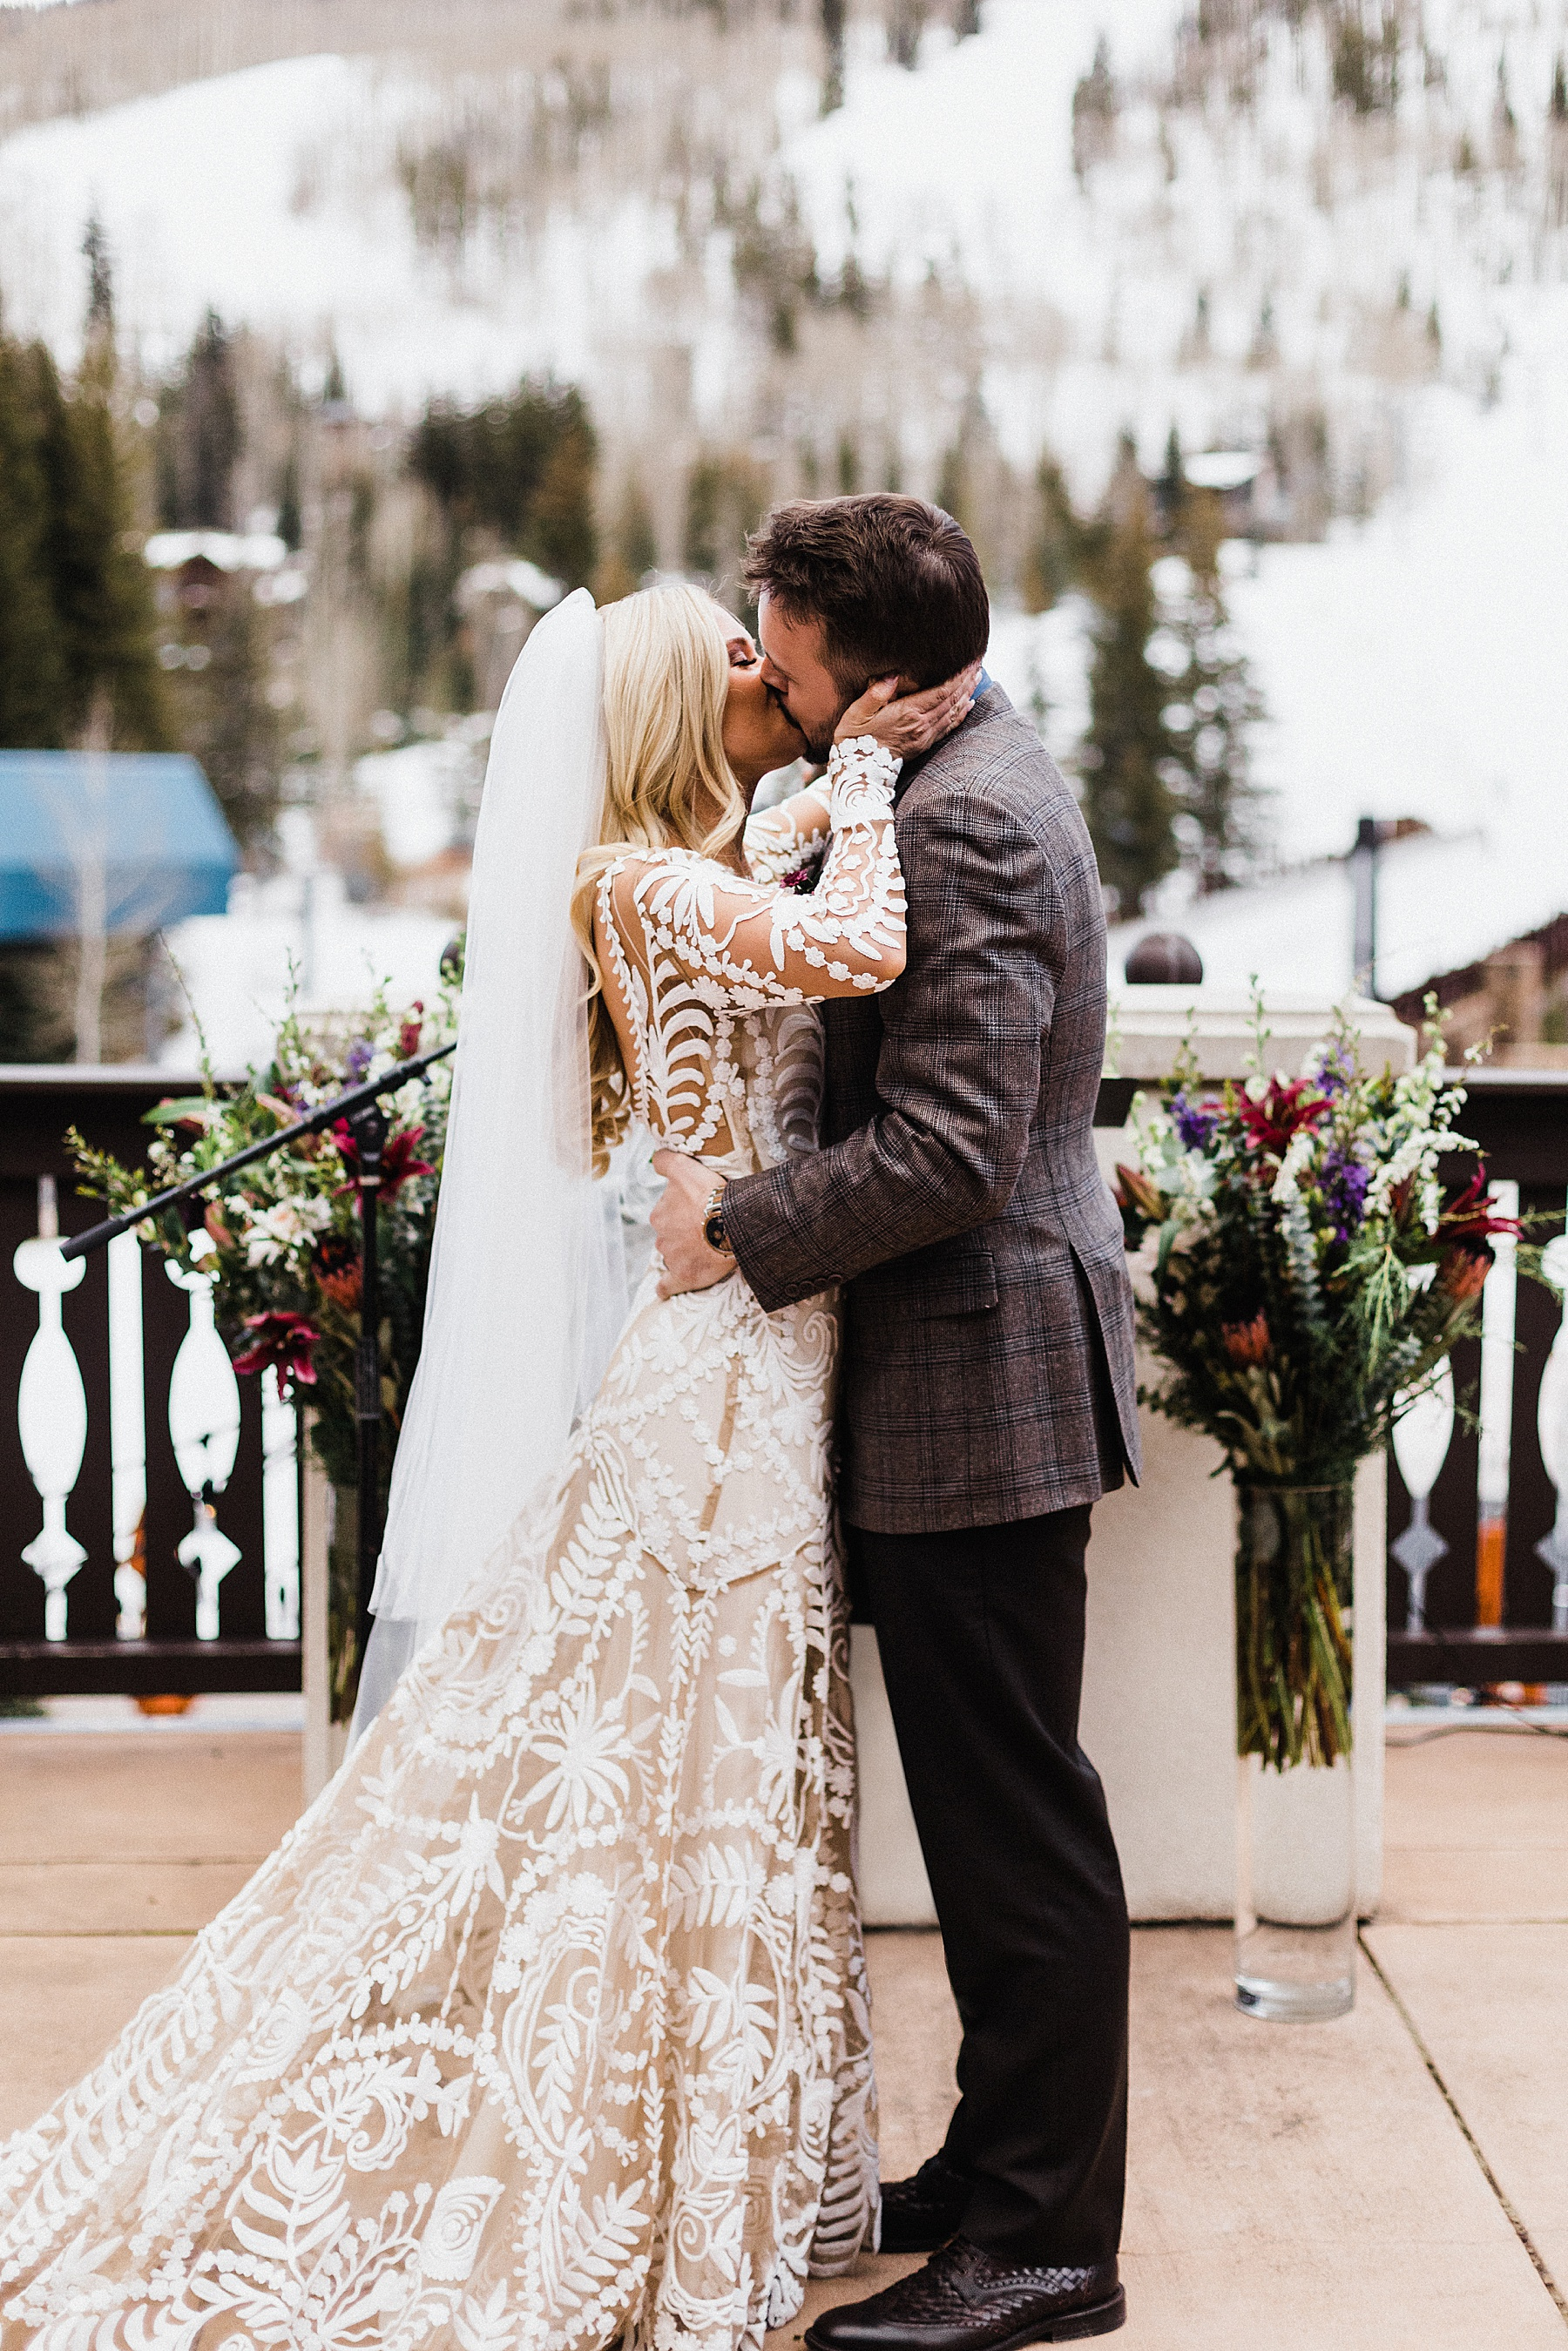 Mountaintop Elopement | Colorado Elopement Photographer + Videographer | Vow of the Wild